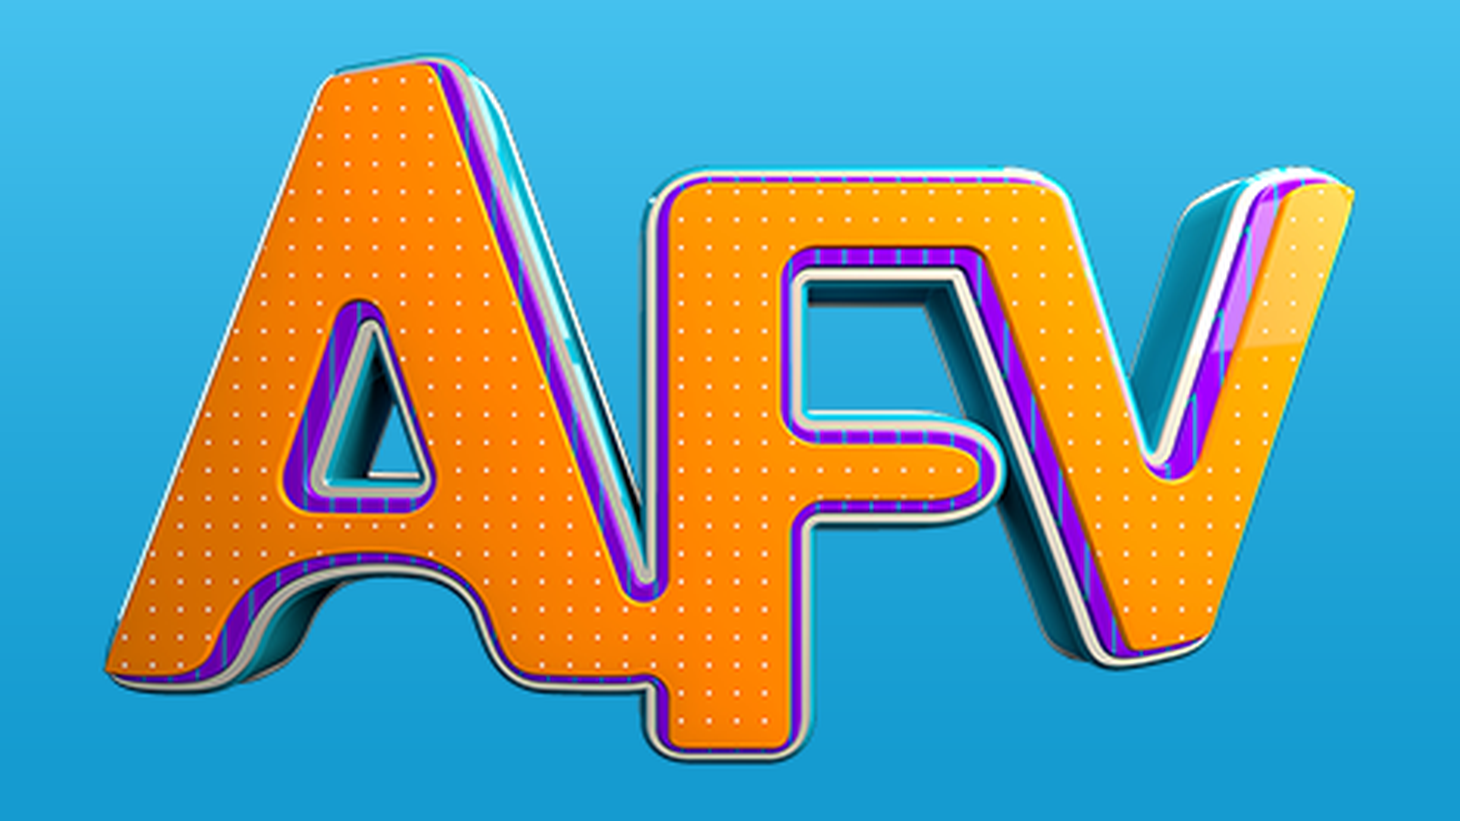 America's Funniest Home Videos logo.